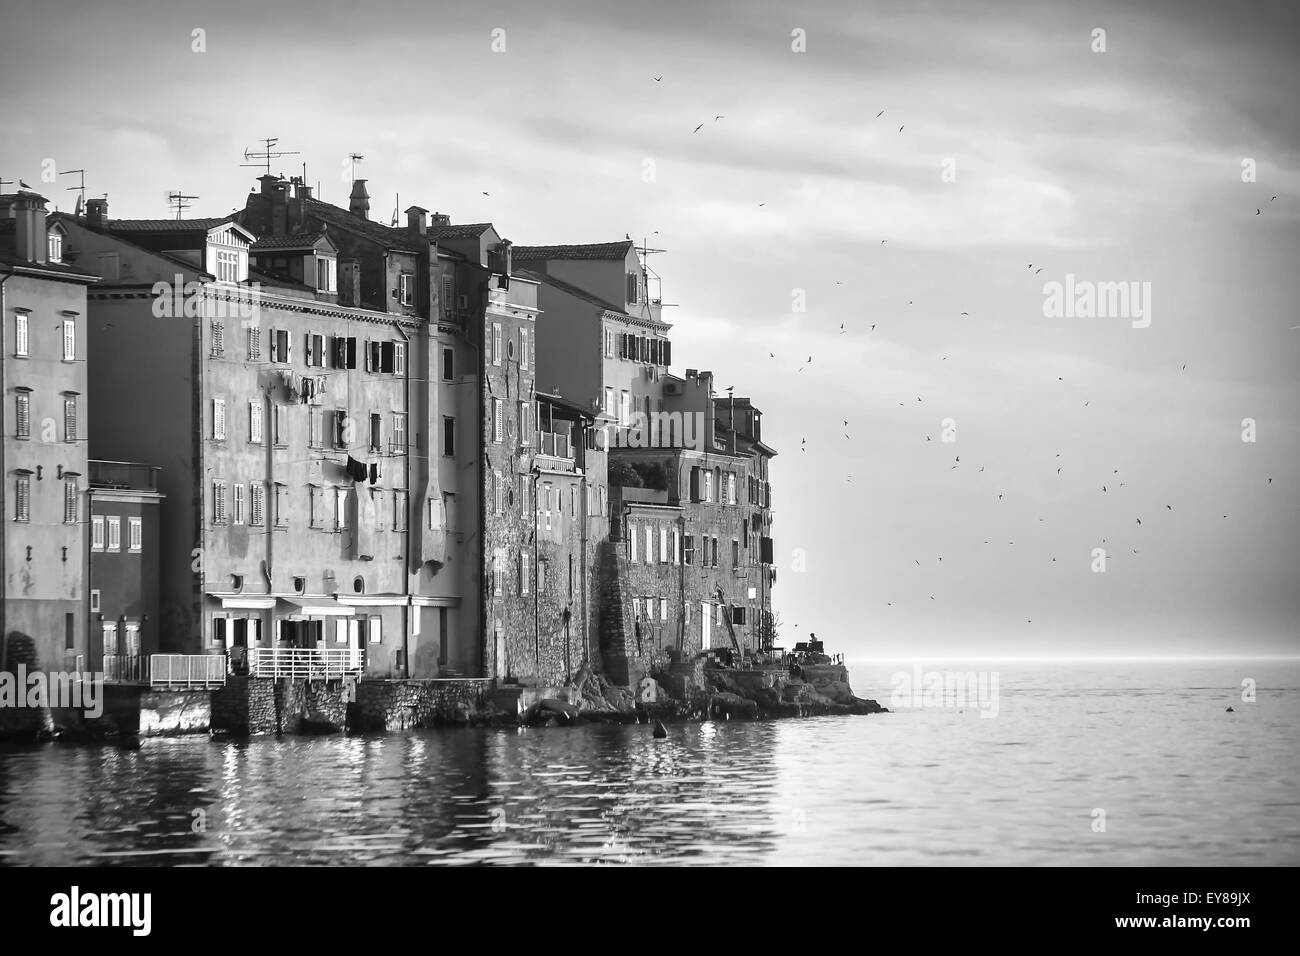 A view of the old city core buildings at sunset in Rovinj, Croatia. - Stock Image